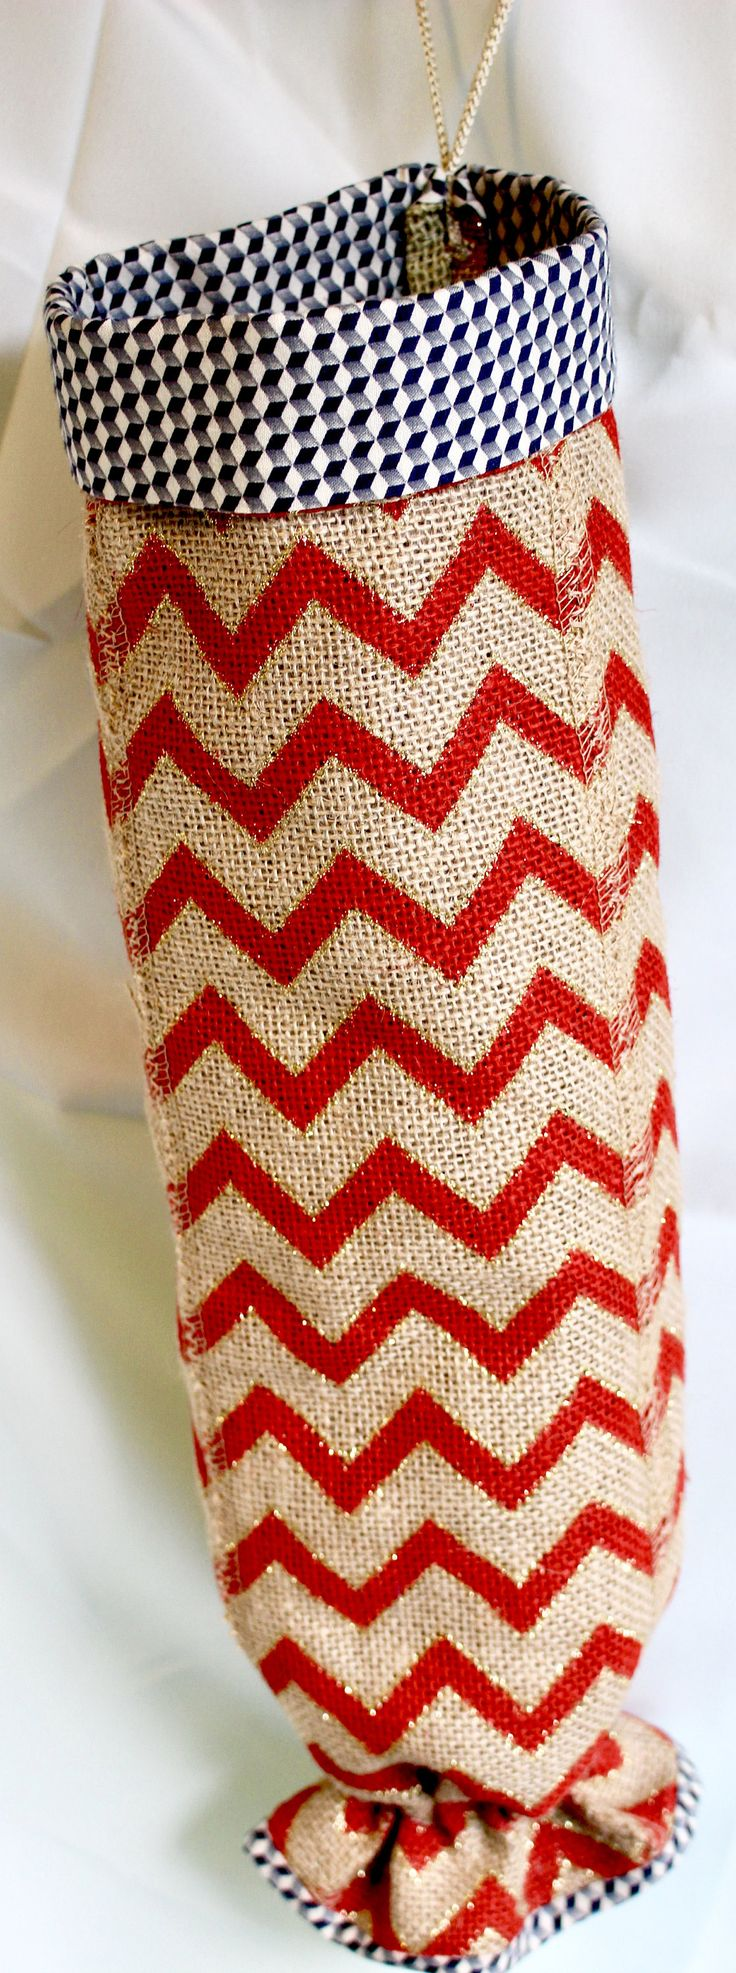 Plastic bag keeper - Plastic Grocery Bag Holder Keeper In Burlap With Personalization And Pizazz Whimsical Chevron Etched With Gold Bling Fully Lined